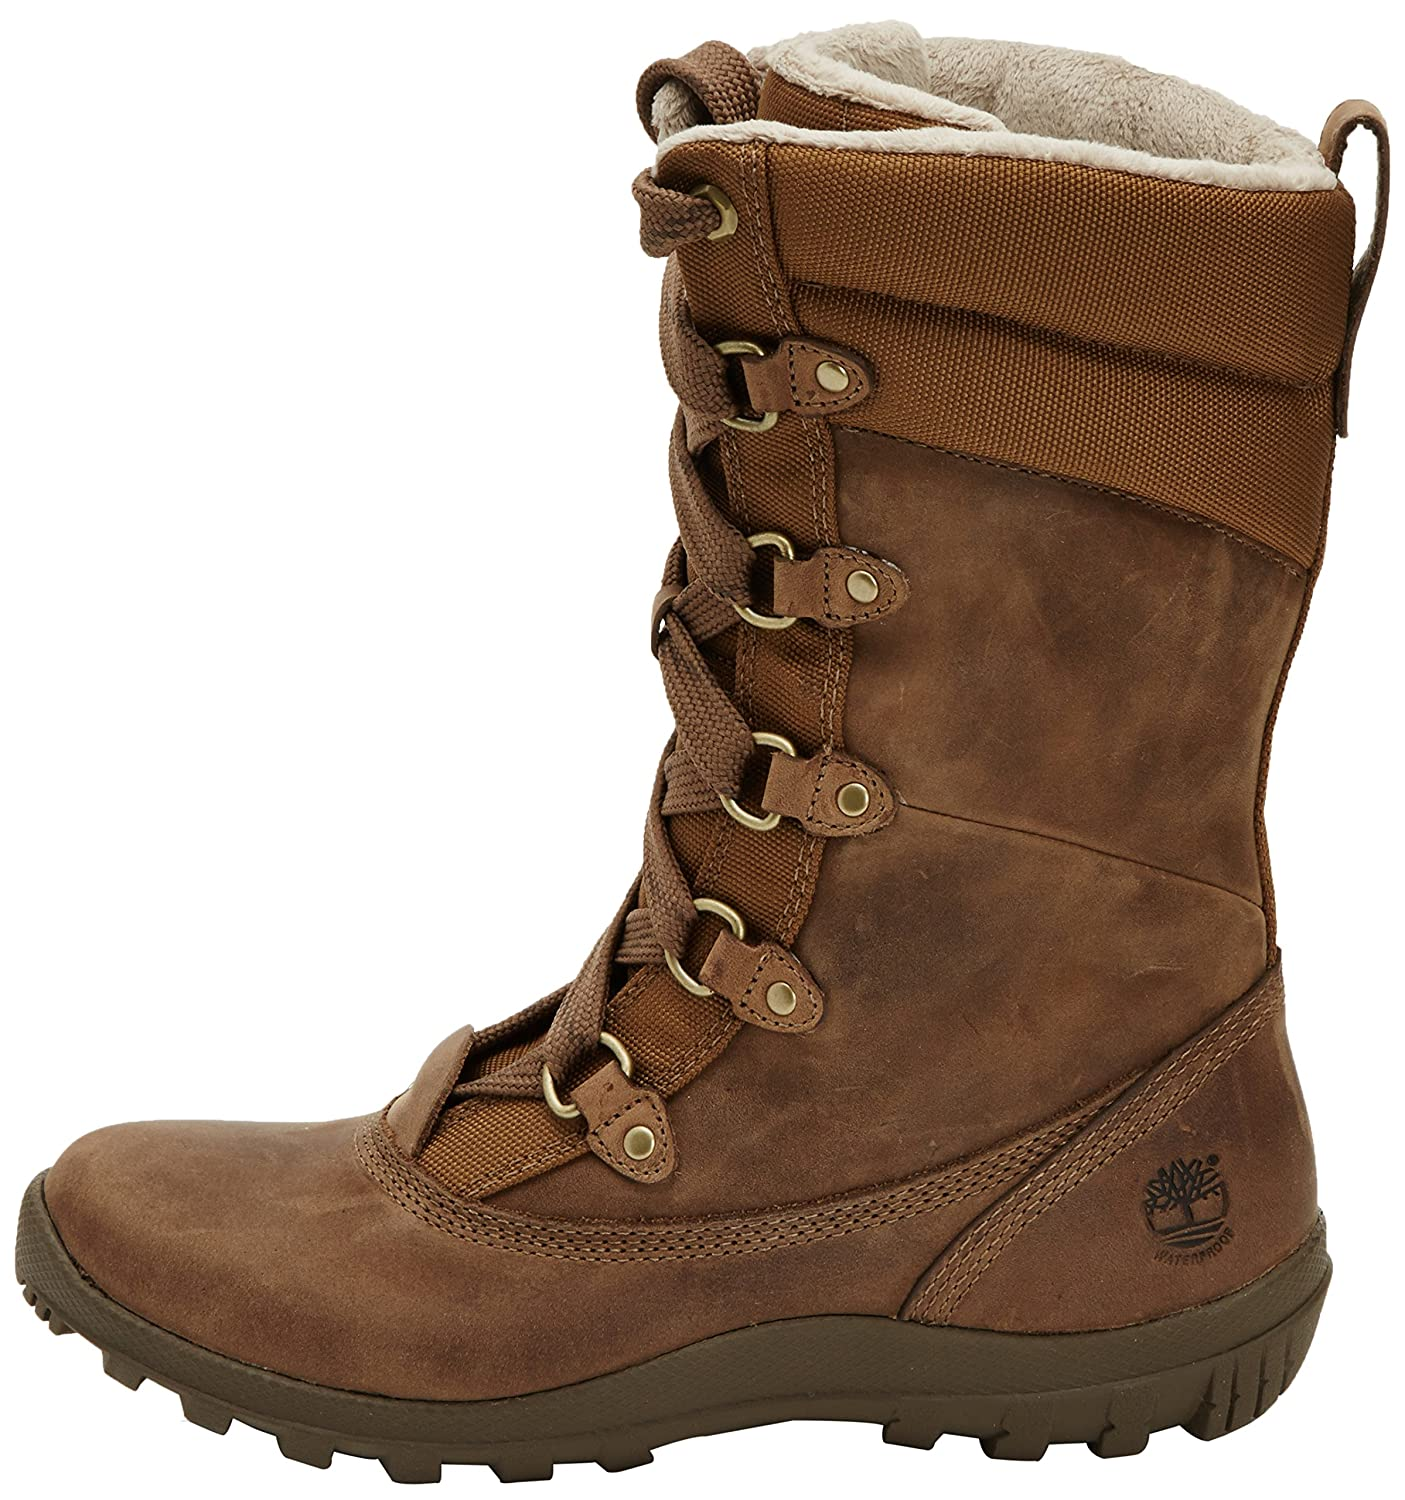 8005e23dbd3 Timberland Earthkeepers Mount Hope, Women's Snow Boots